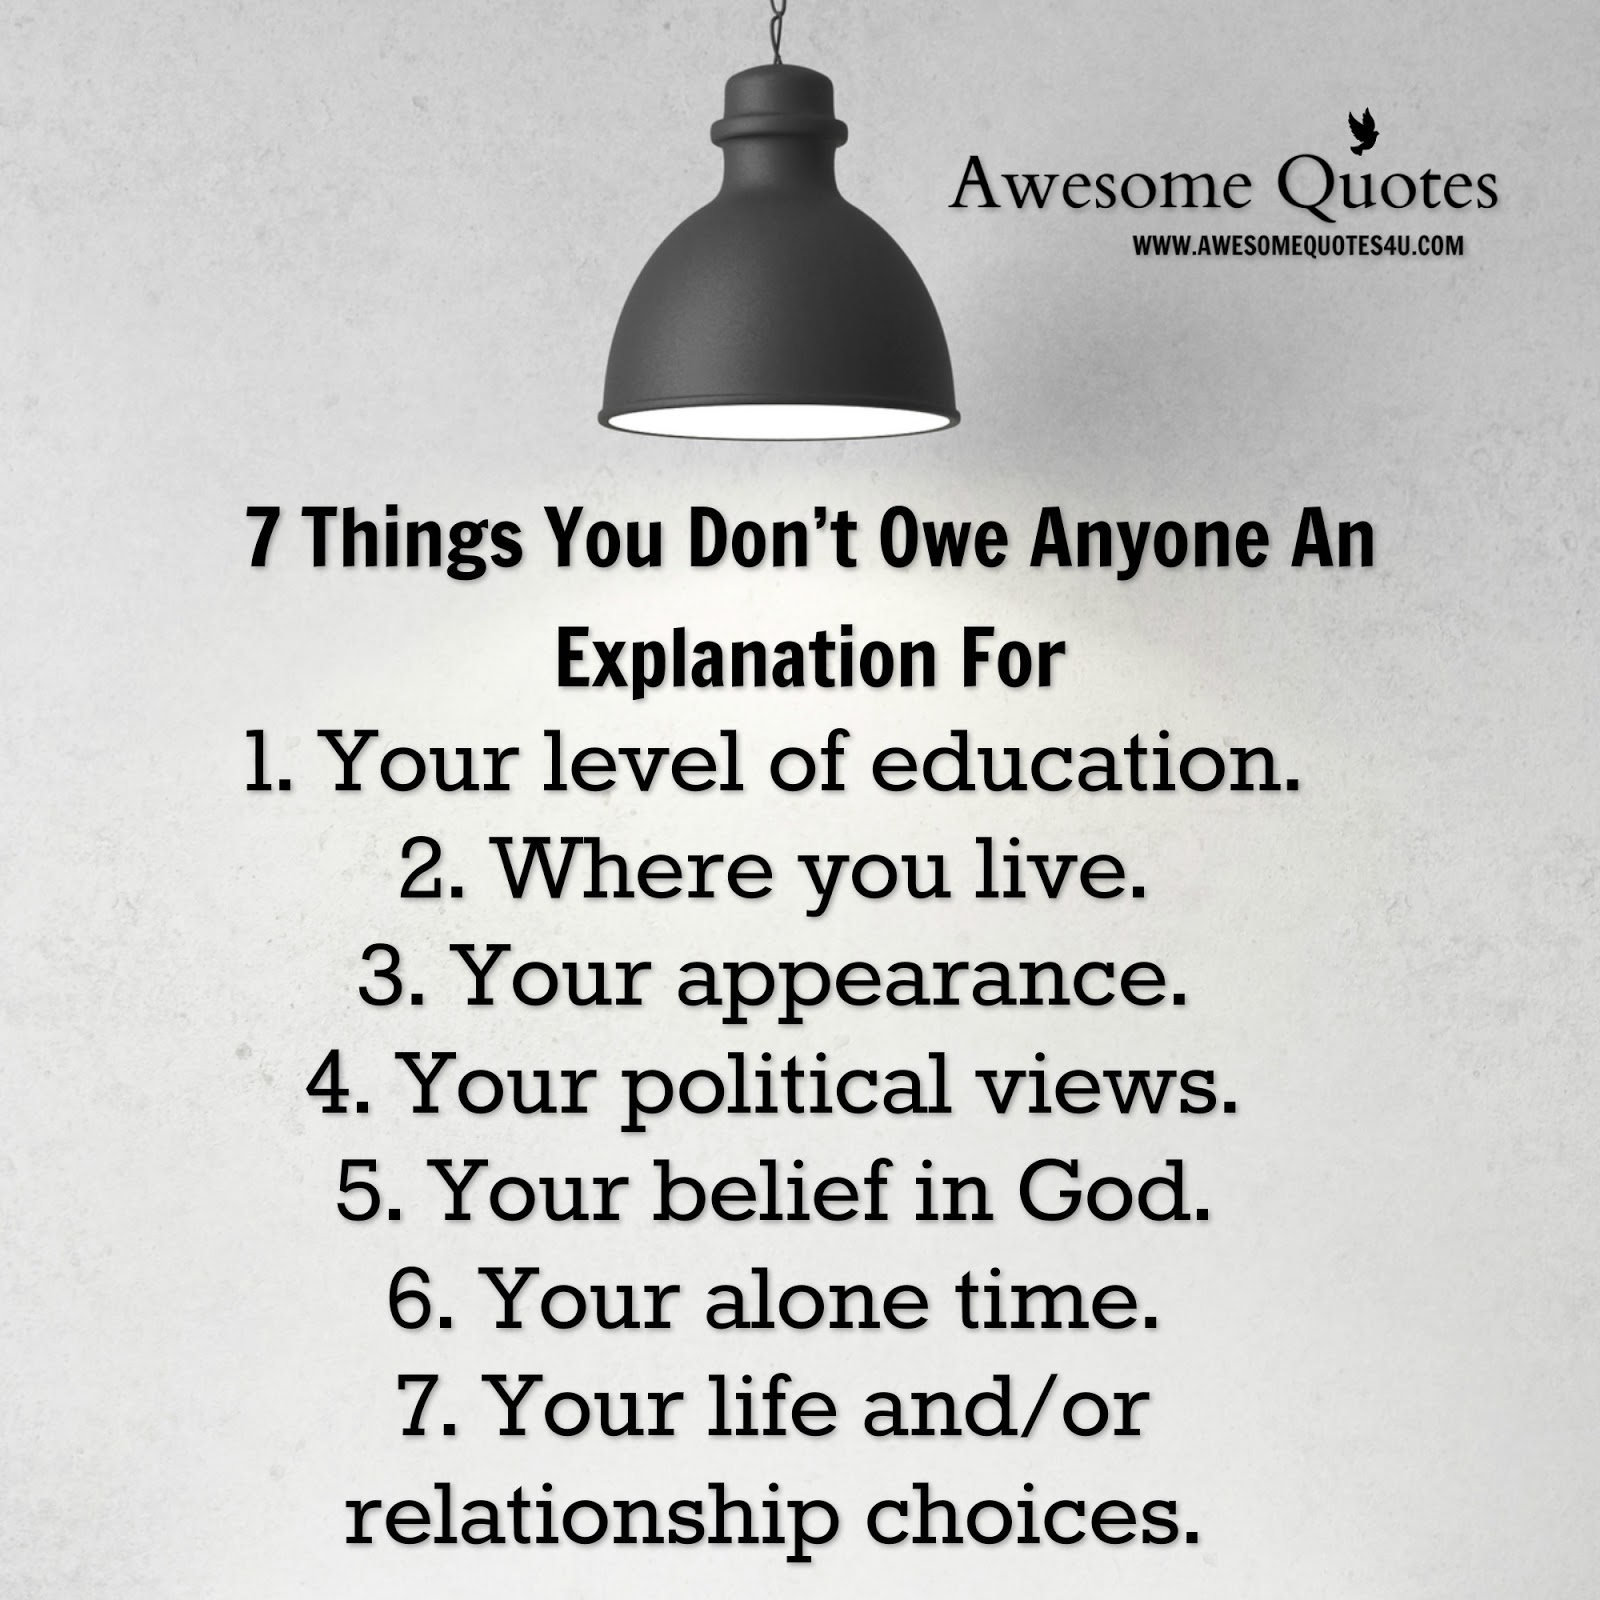 Quotes To Live By With Explanation: Awesome Quotes: 7 Things You Don't Owe Anyone An